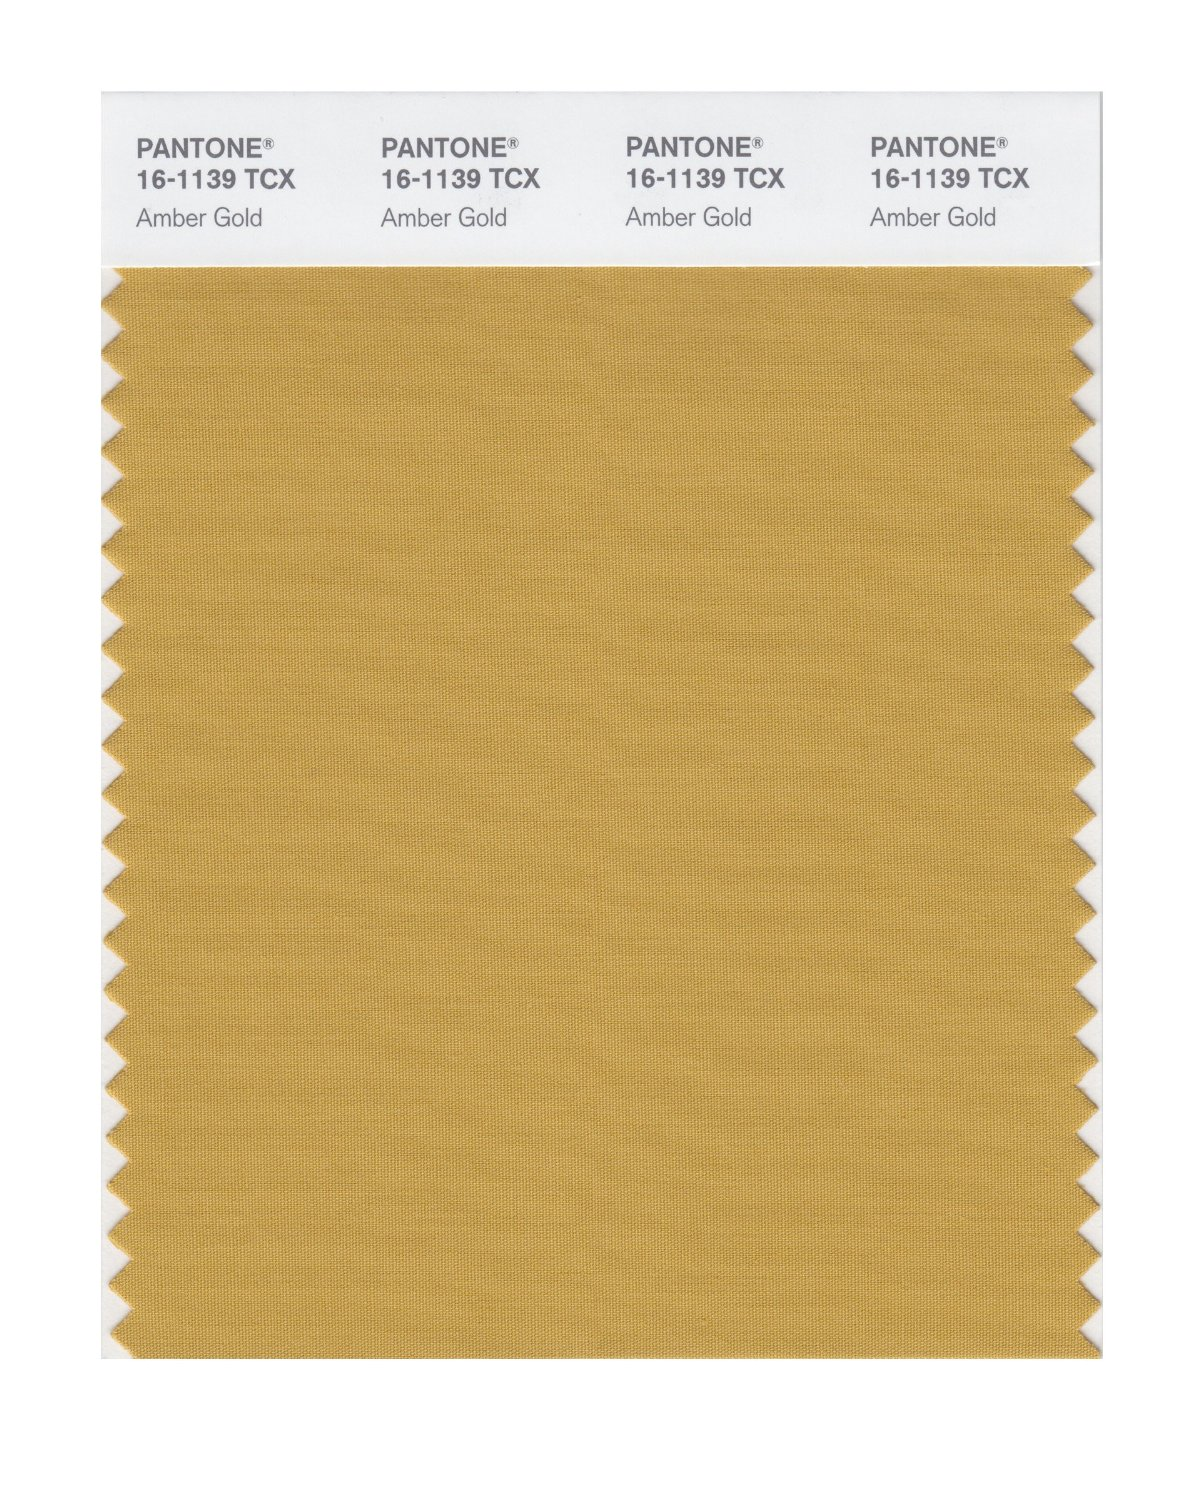 Pantone Smart Swatch 16-1139 Amber Gold